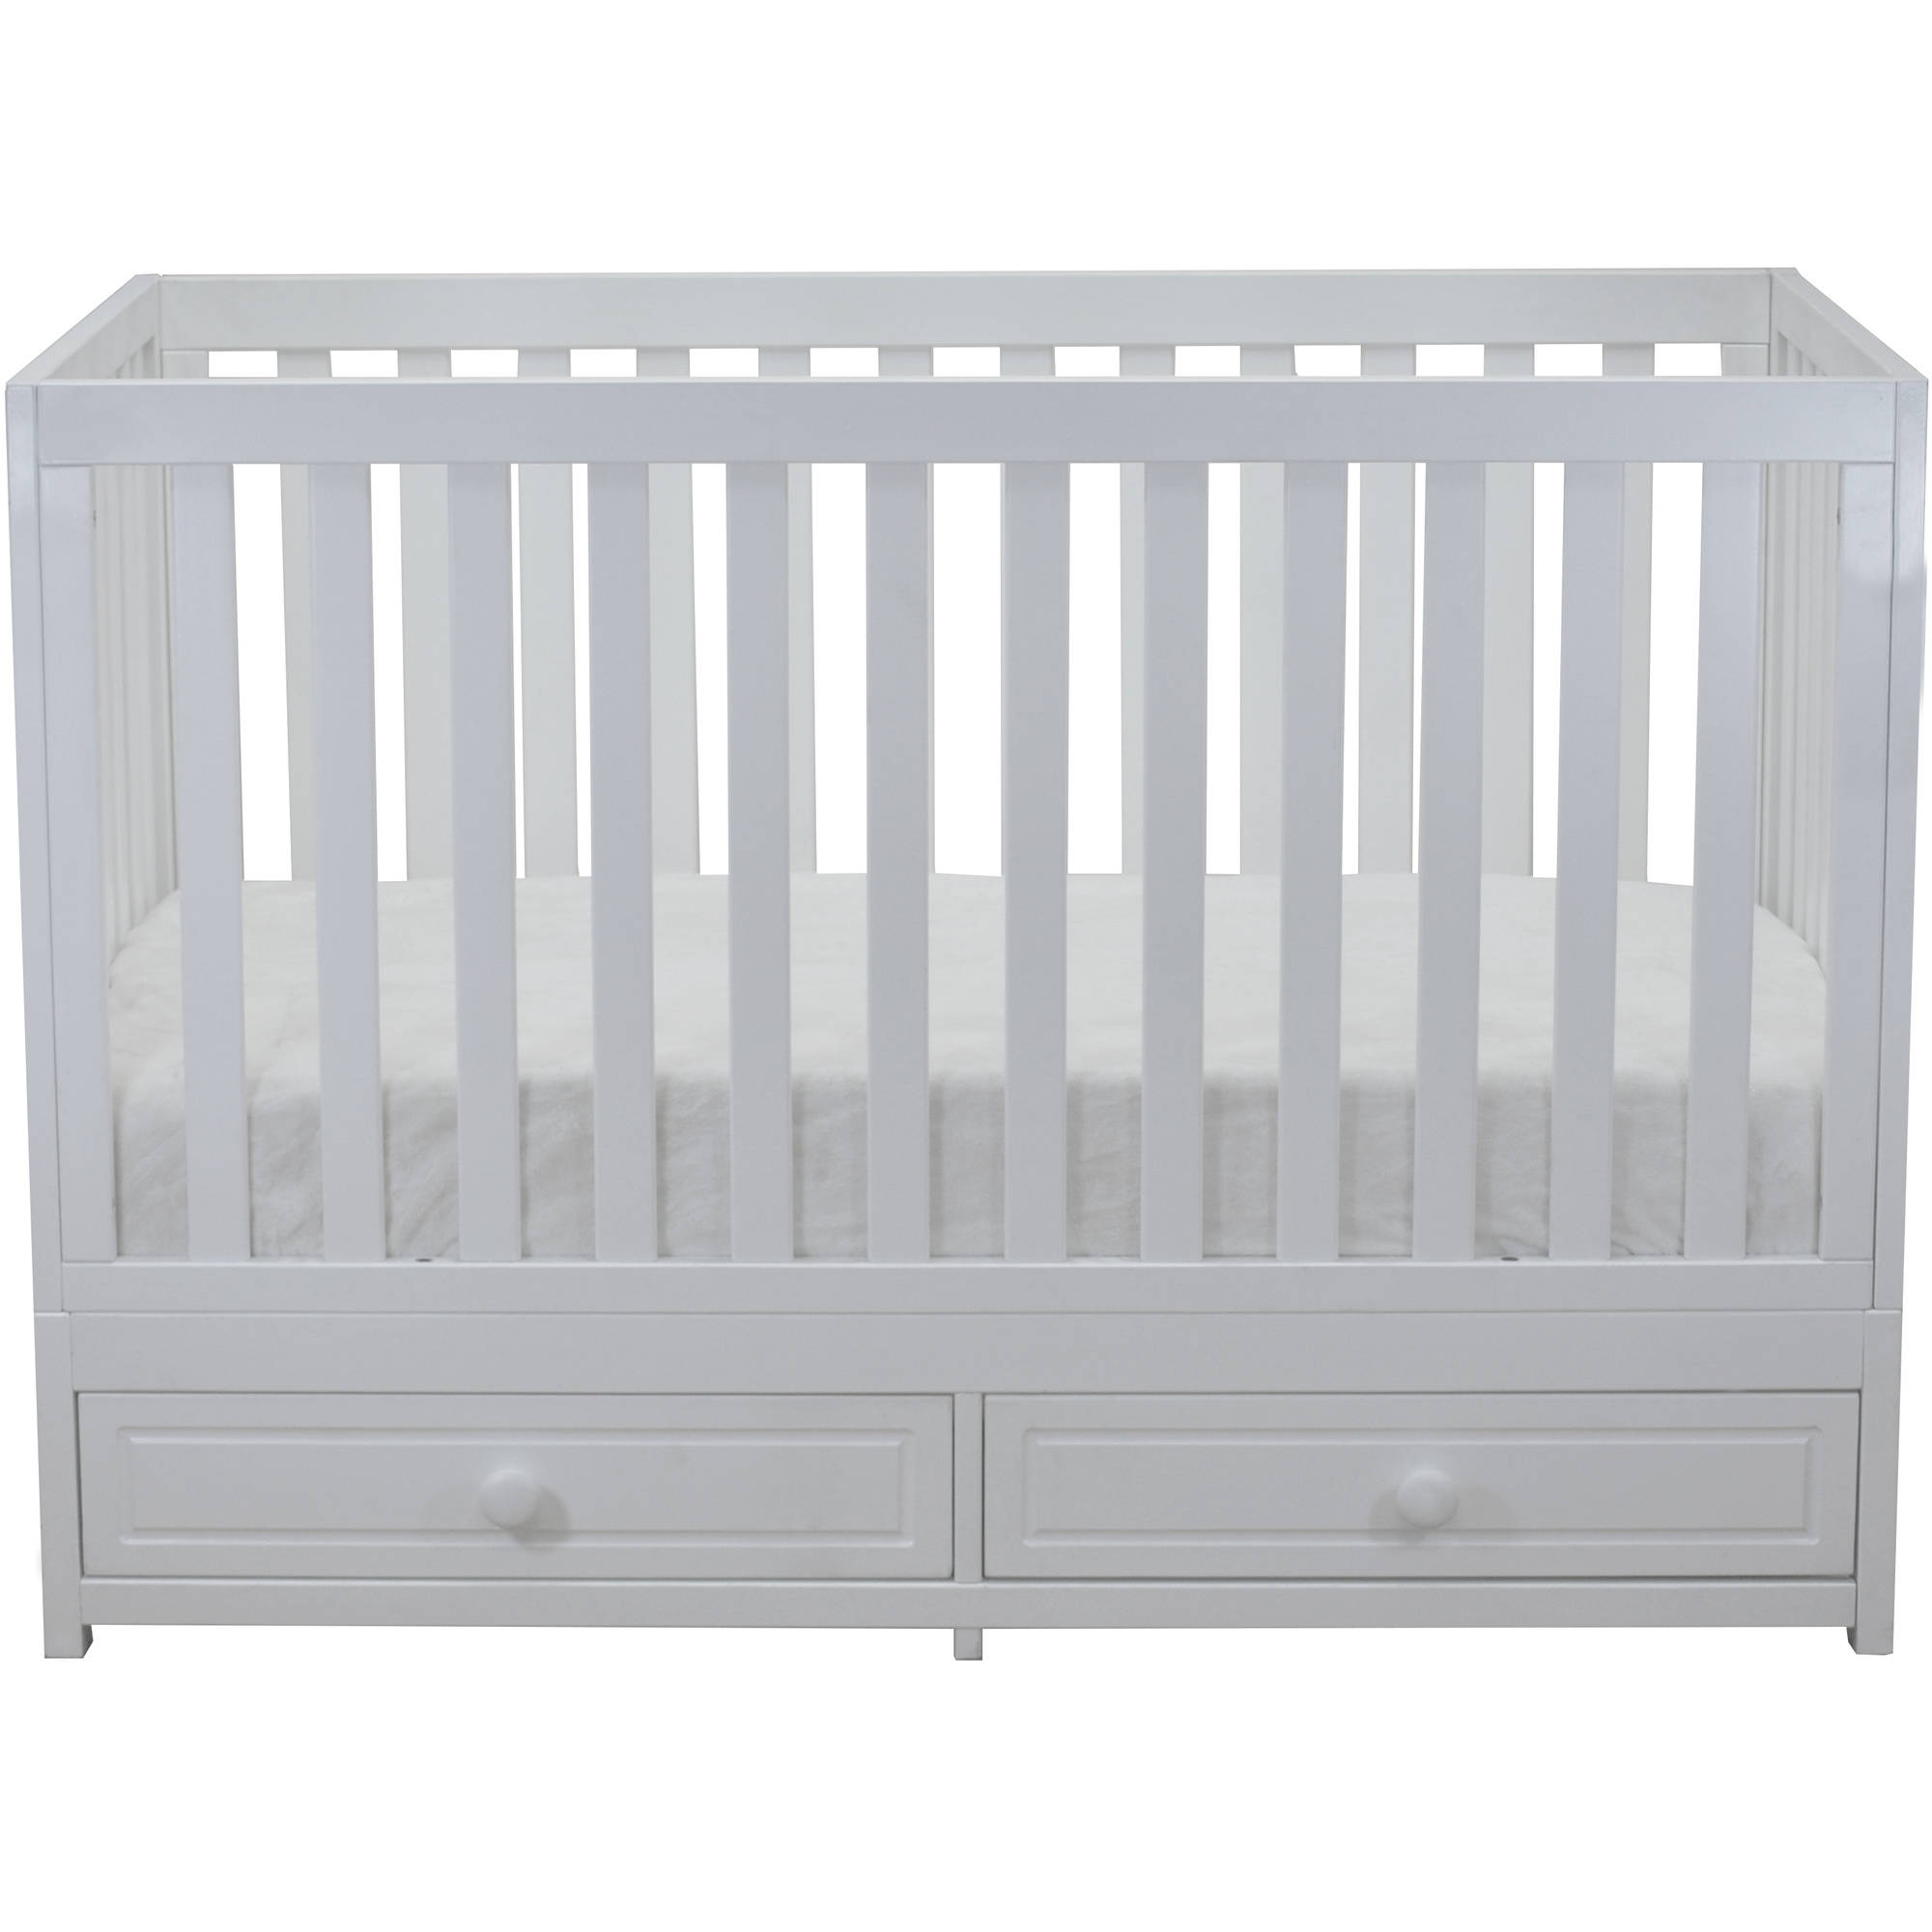 AFG Baby Furniture Marilyn 3 in 1 Convertible Crib with Storage